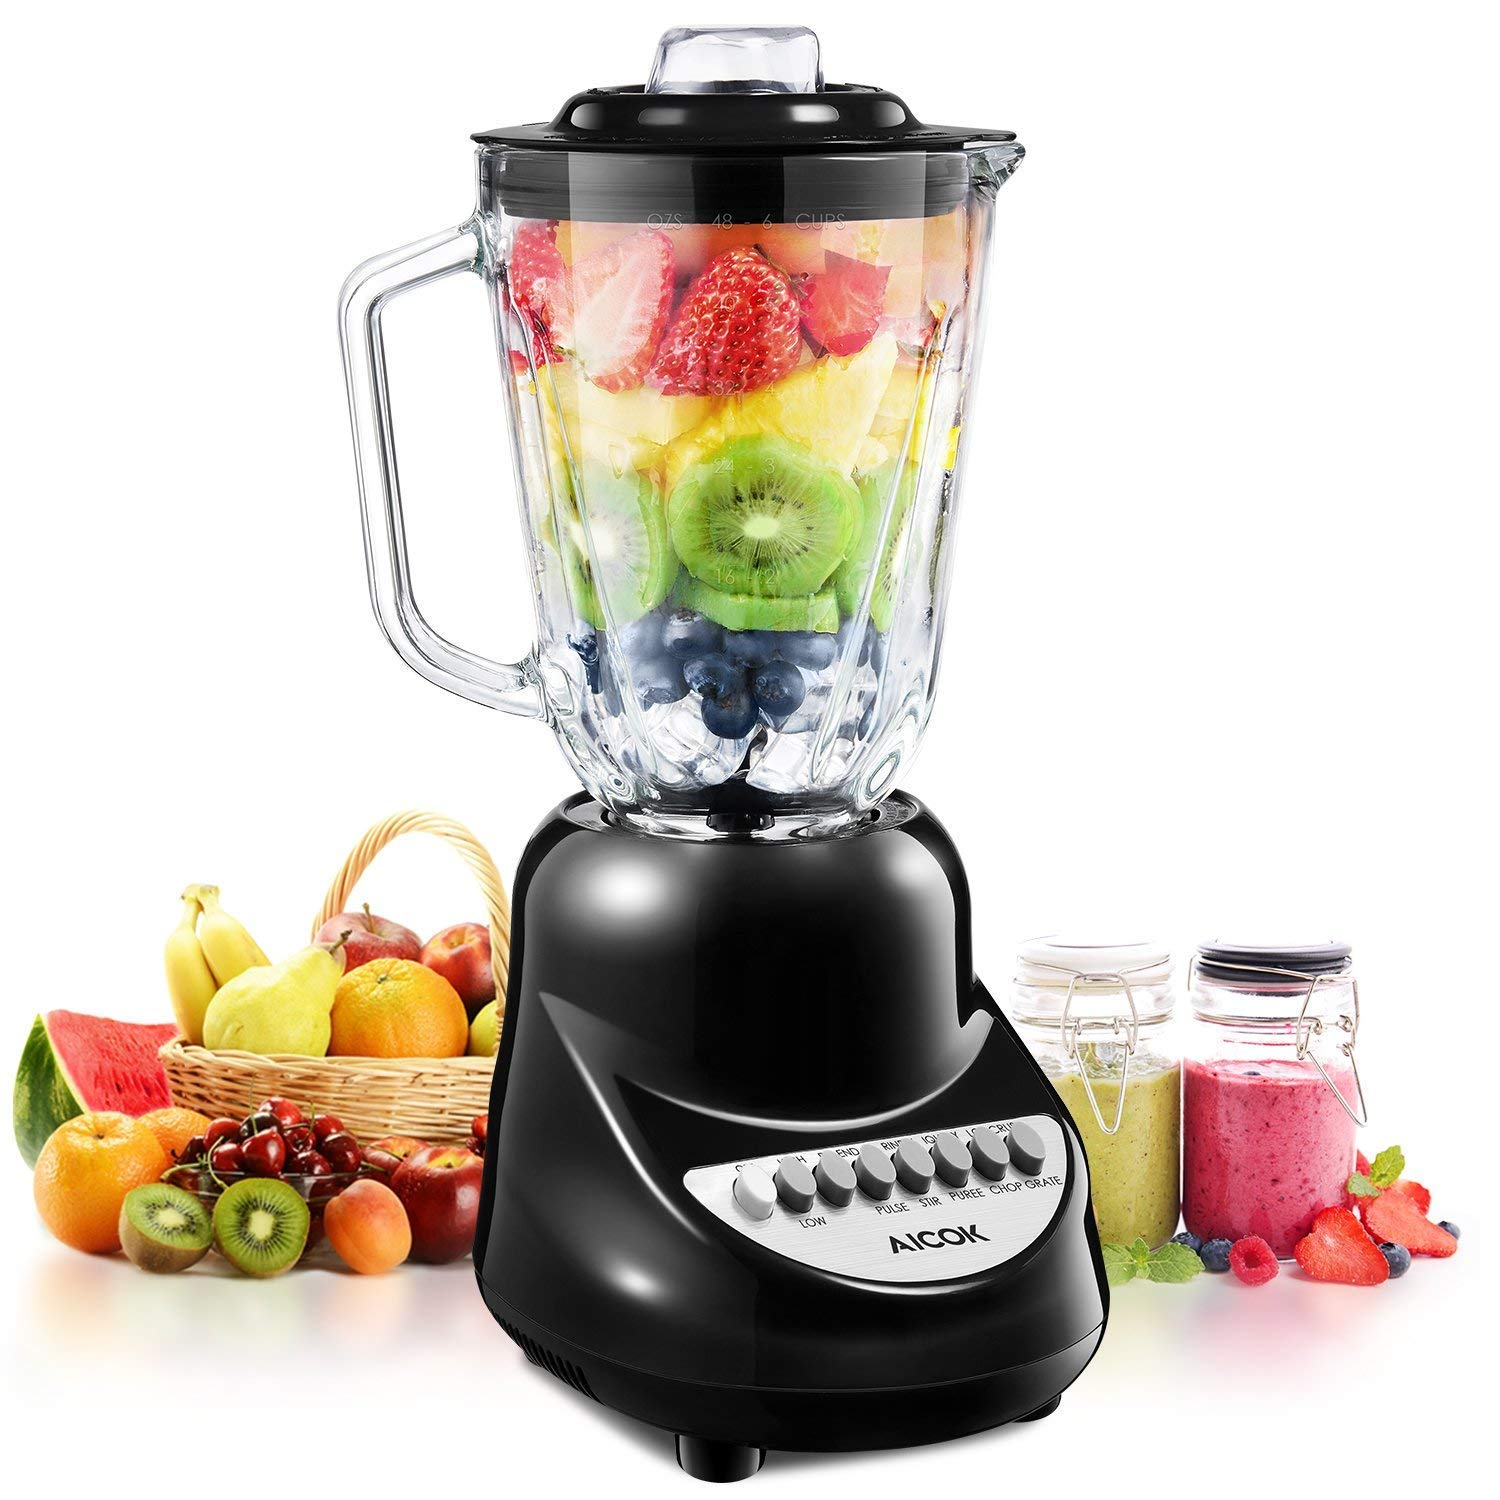 Blender, Aicok Smoothie Blender with 450 Watt Auto-IQ Base for Shakes and Smoothies, 10-Speed Settings Personal Blender with 50oz Glass Jar & 20 oz Travel Sports Bottle, BPA Free, Black